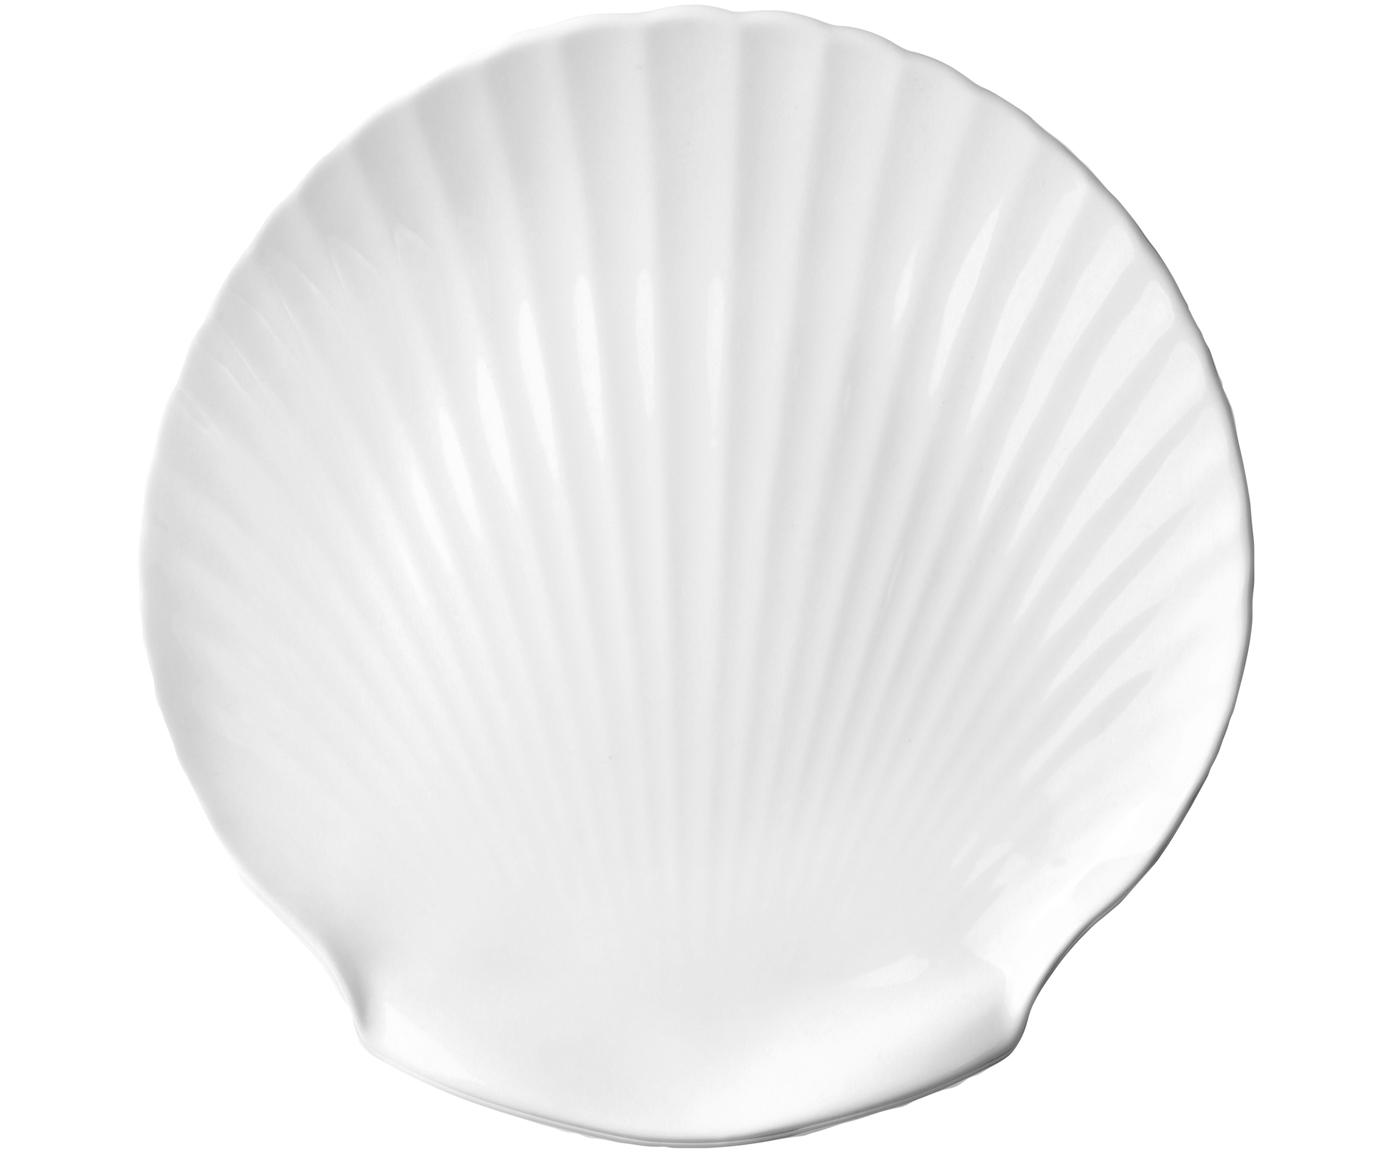 Fine Bone China serveerplateau Shell, Beenderporselein, Wit, Ø 27 cm